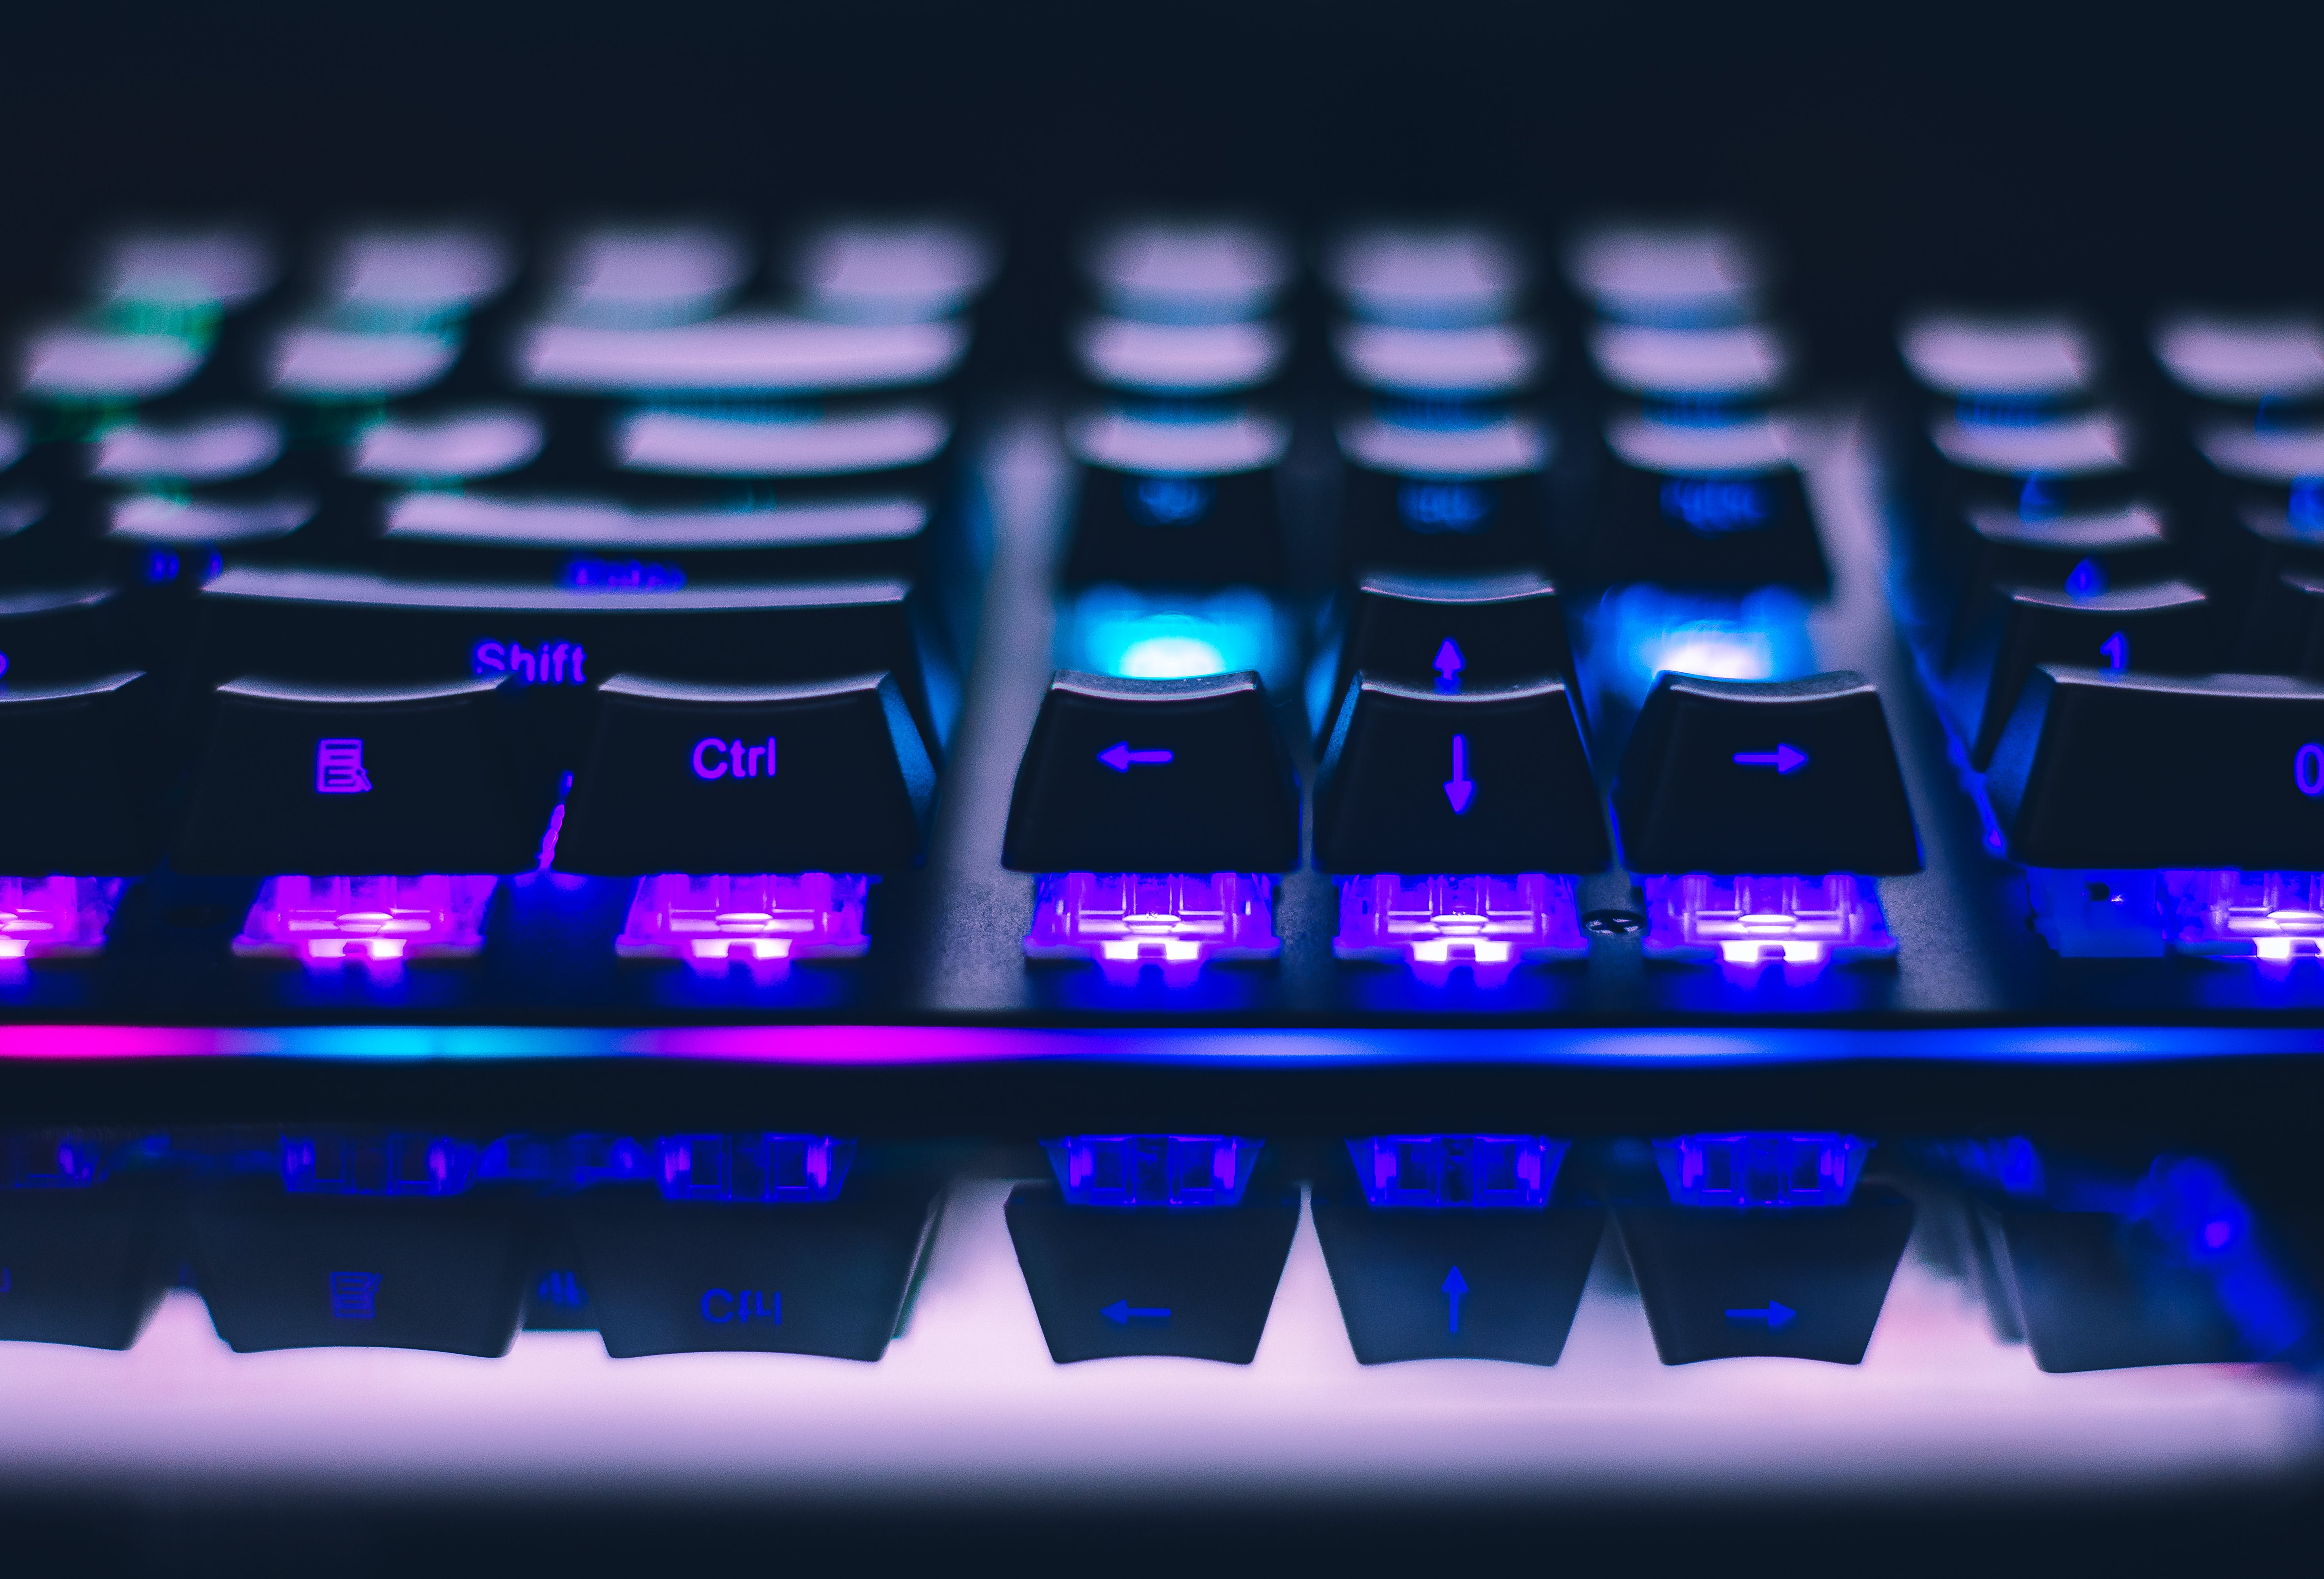 Close-Up Photo of Gaming Keyboard